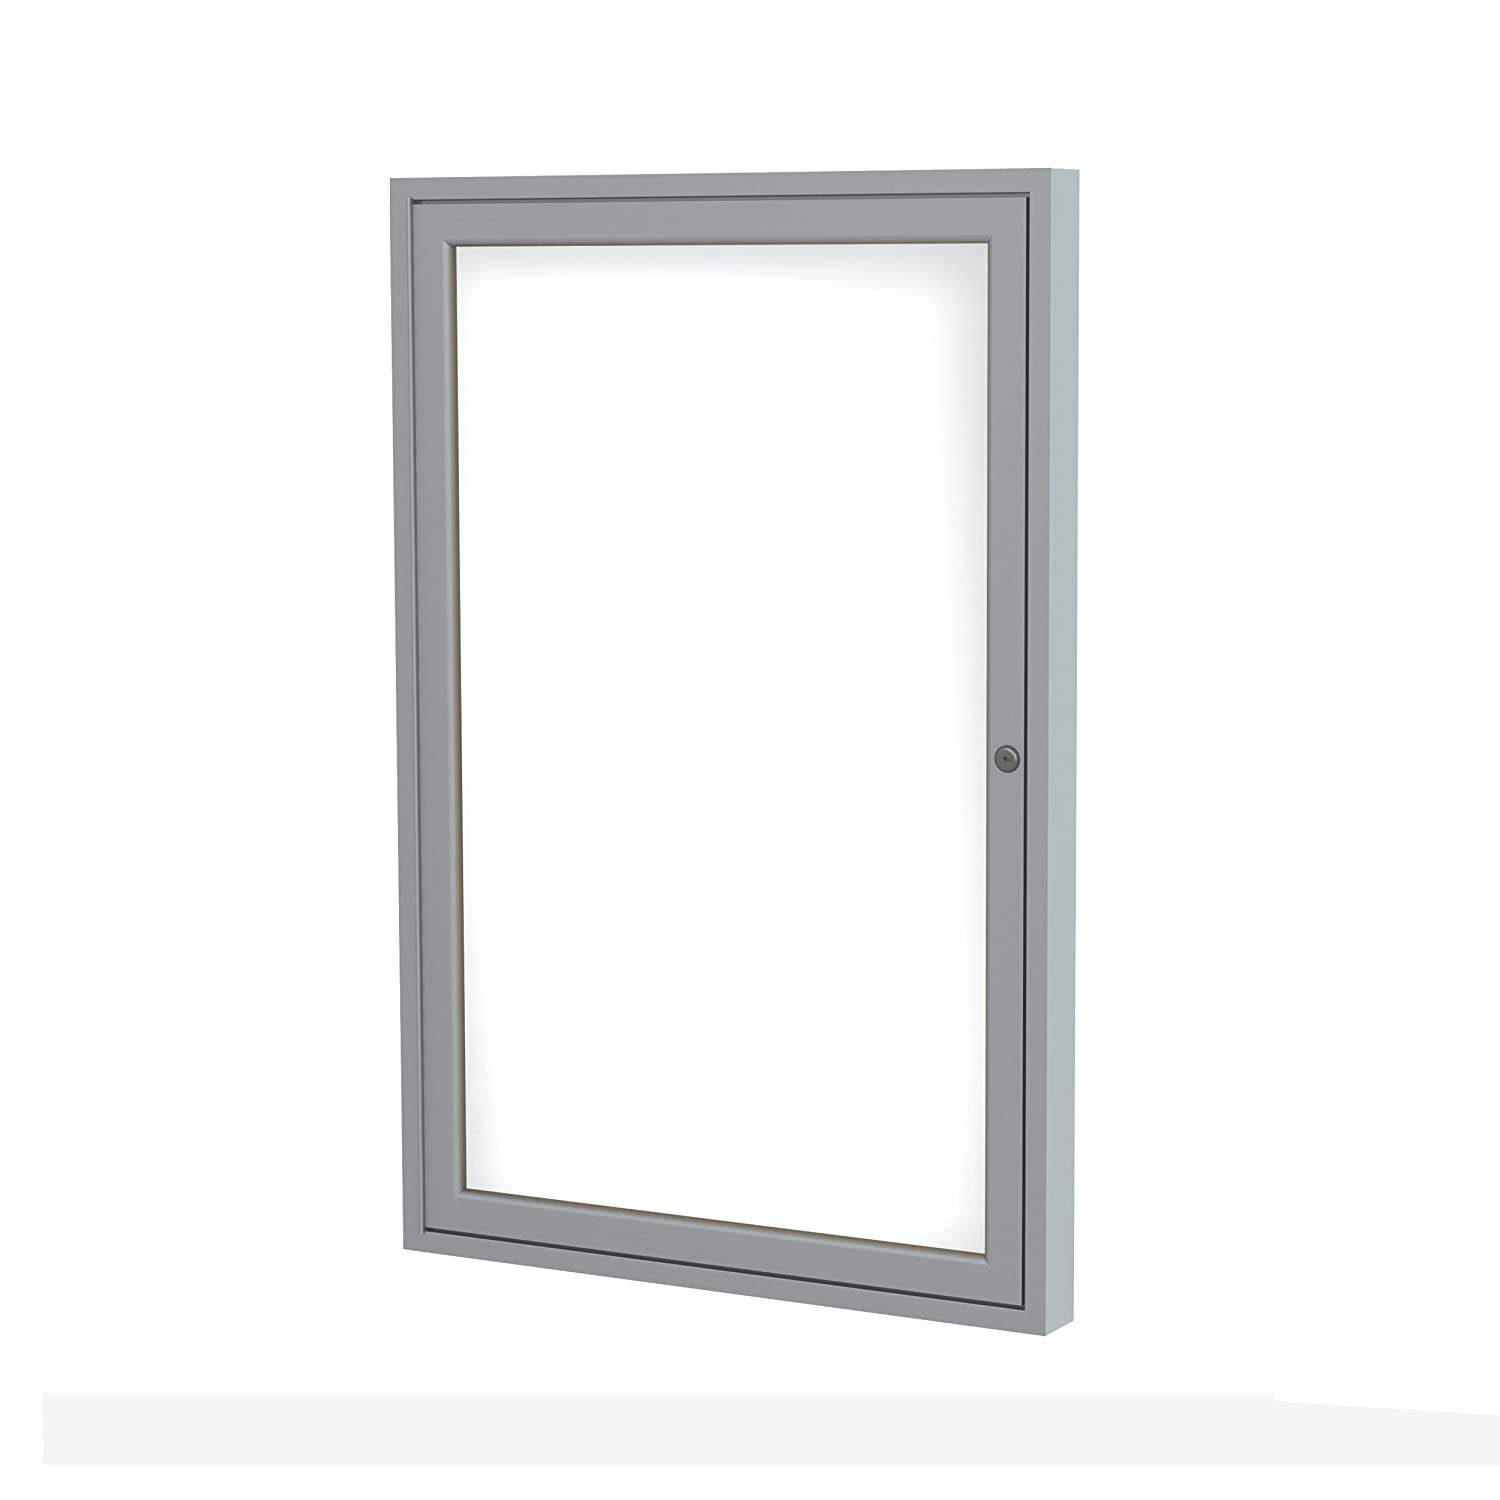 1 Door Enclosed Magnetic Whiteboard Frame Finish: Satin, Size: 3' H x 3' W